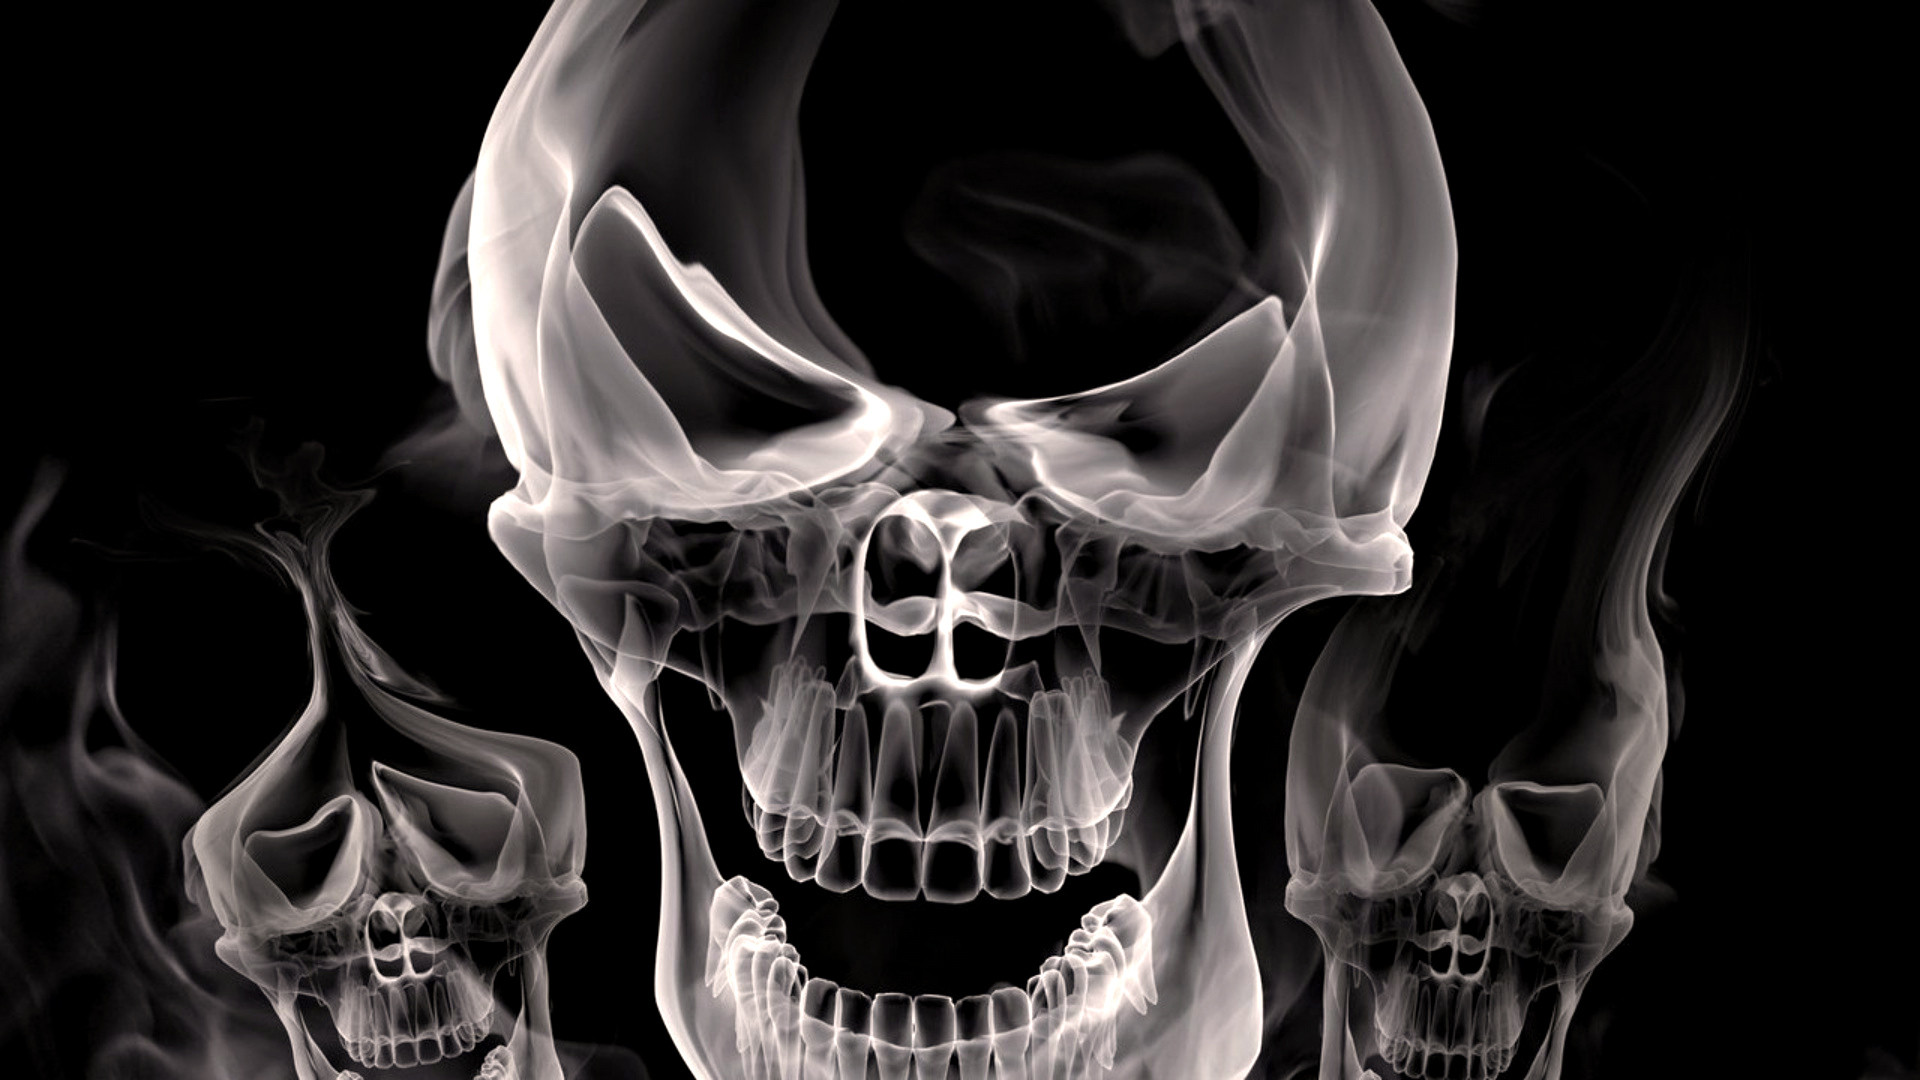 Res: 1920x1080, ... Cool 3D Hd Skull Wallpaper Other Wallpaper 3D Skull High Quality Resolution Wallpaper Hd ...